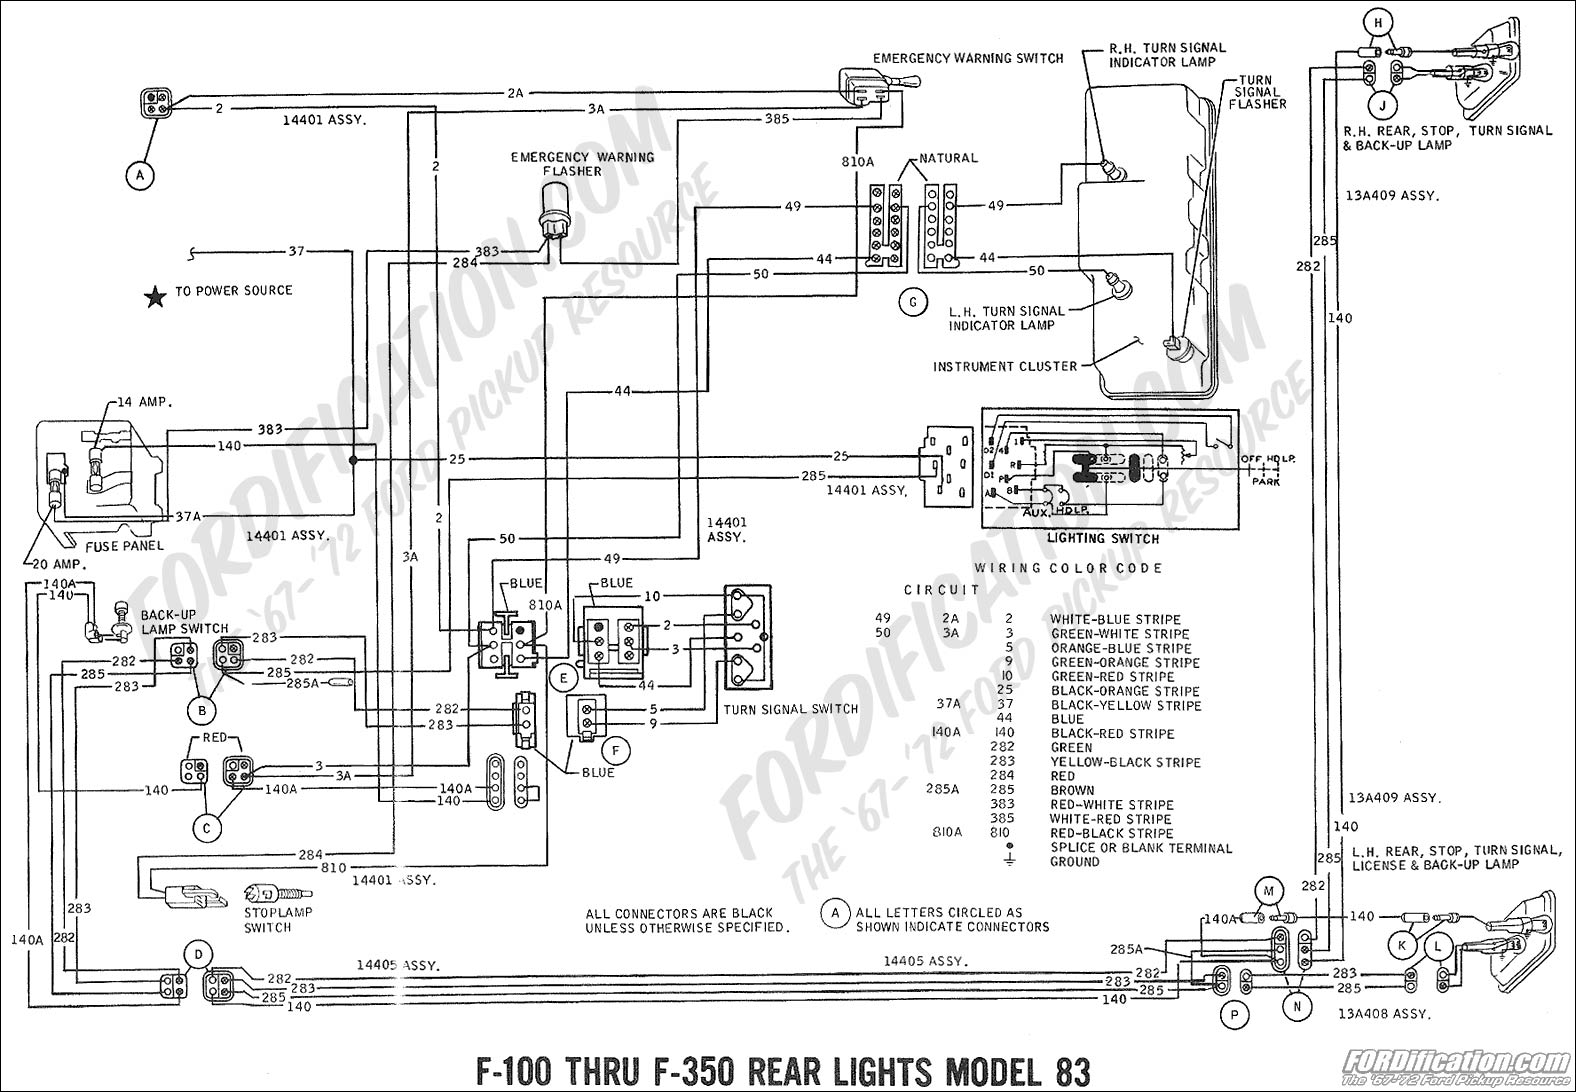 wiring_69rearlights mdl83 2 1977 ford f100 alternator wiring diagram wiring diagram and 1972 ford f100 wiring harness at webbmarketing.co